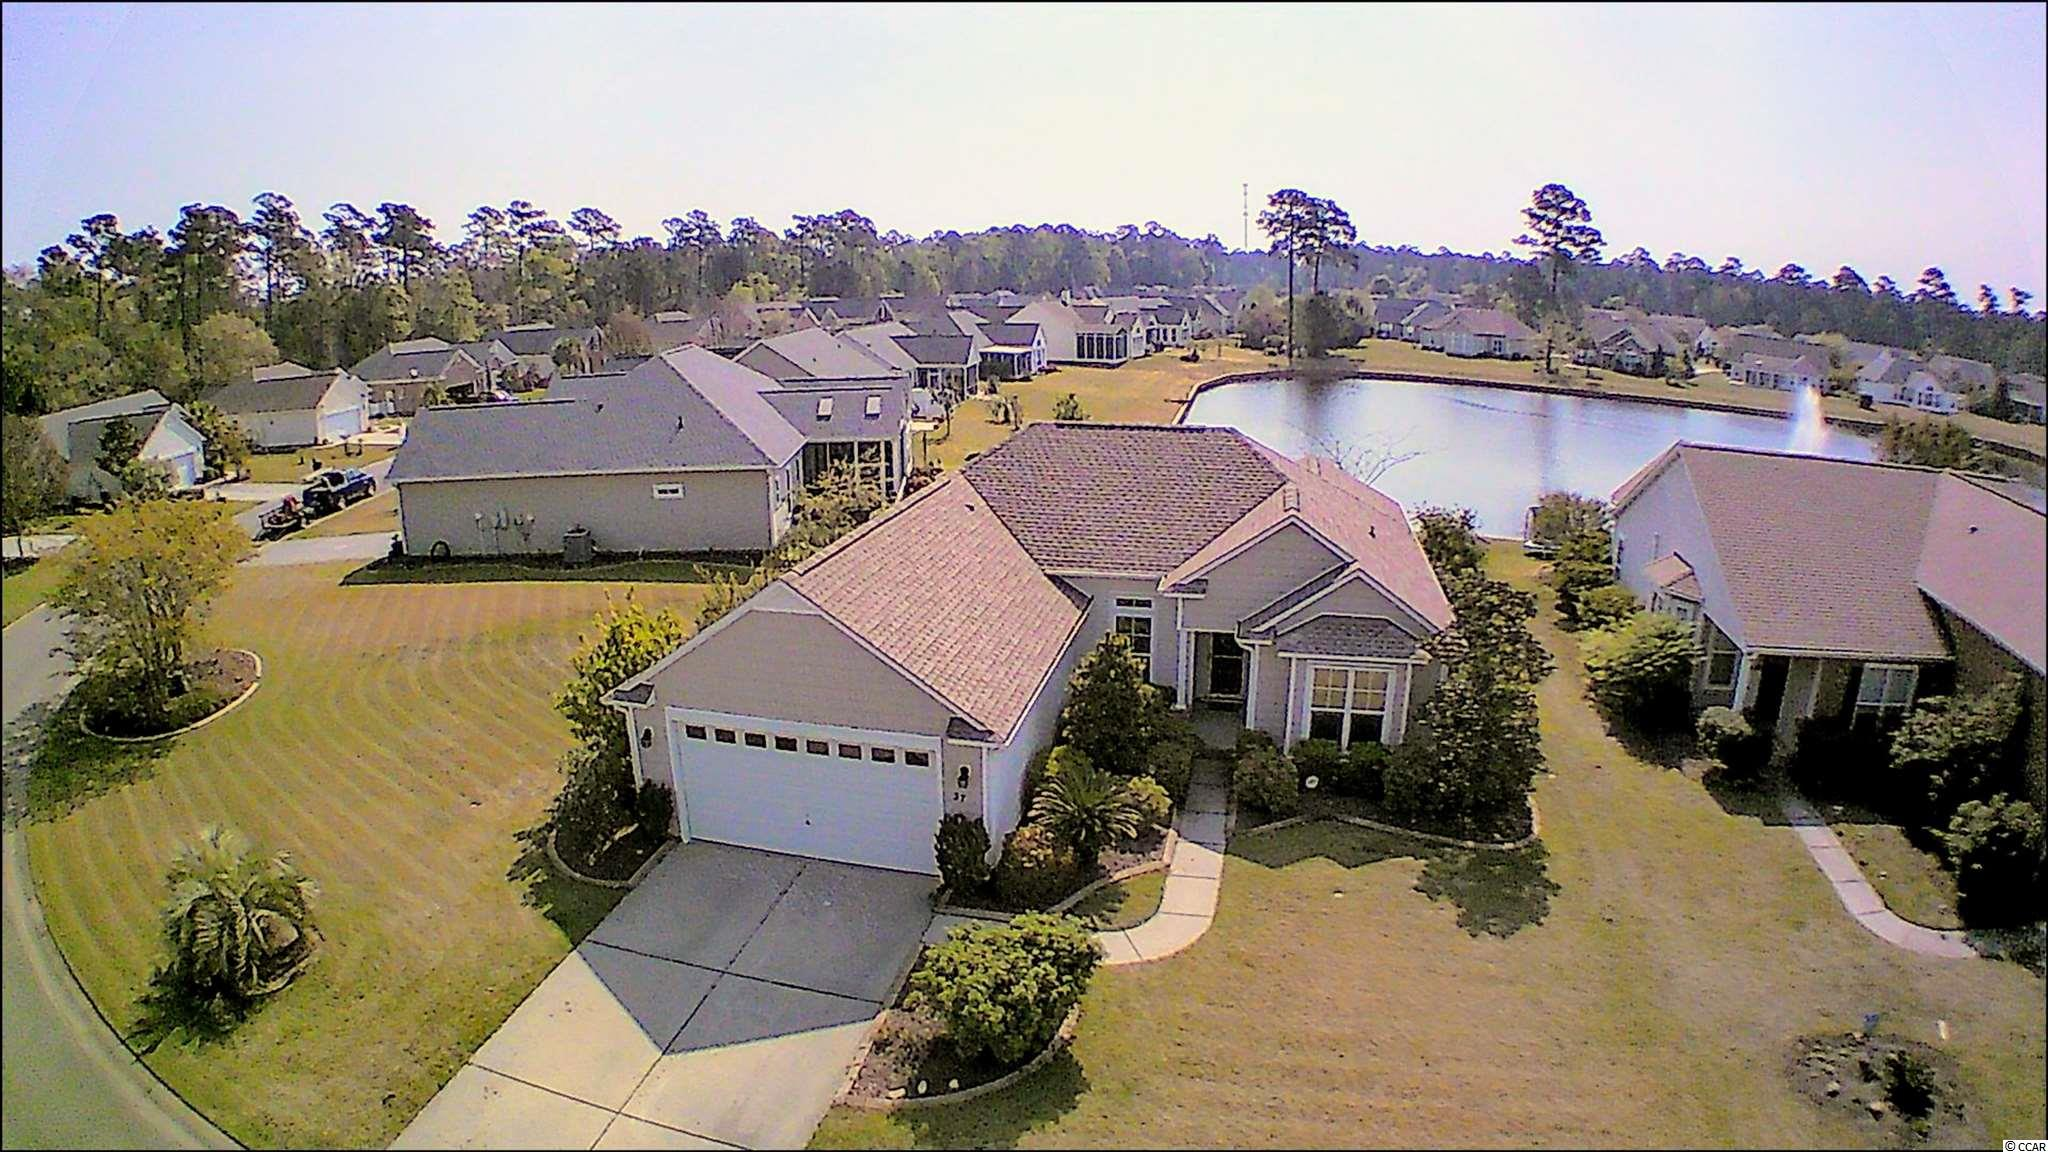 Waterview Lot with Large Side Yard for Hosting BBQ with Family and Friends. Enjoy Sitting in the Sun Room or on the outdoor patio and Watch the Water Birds Play on Your Large Pond. 3 Bedroom 2 Bath One Level House Located in Linksbrook Community. Barrington Floor Plan with Vaulted Ceilings in Living Areas. Laundry Room. Carolina Room. Sun Room has Portable HVAC, Collapsible-Screened Windows for Full View of Outdoors. The entire House has Rain Soft Water Softener. Kitchen Sink has Reverse Osmosis Filtration System for Drinking Water. Mancave Delight with Separate Full HVAC in Garage, Storage Galore, Shelves, Tool Cabinets, and New Garage Door Motor 2019. Hurricane Shutters. 3M Film on Windows for Extra Efficiency. Irrigation System. Security System. Full House Home Team Pest Defense. House HVAC Replaced 2019, New Roof 2019. New Water Heater 2019. Large Community Clubhouse includes a Full Kitchen, Entertaining Area, and Fitness Center. Large Pool, Tennis Court, and Picnic Pavilion including Grills. Just Down the Road is Boating, Fishing, Marshwalk, Dining, Entertainment, Shopping, and Golf Courses.